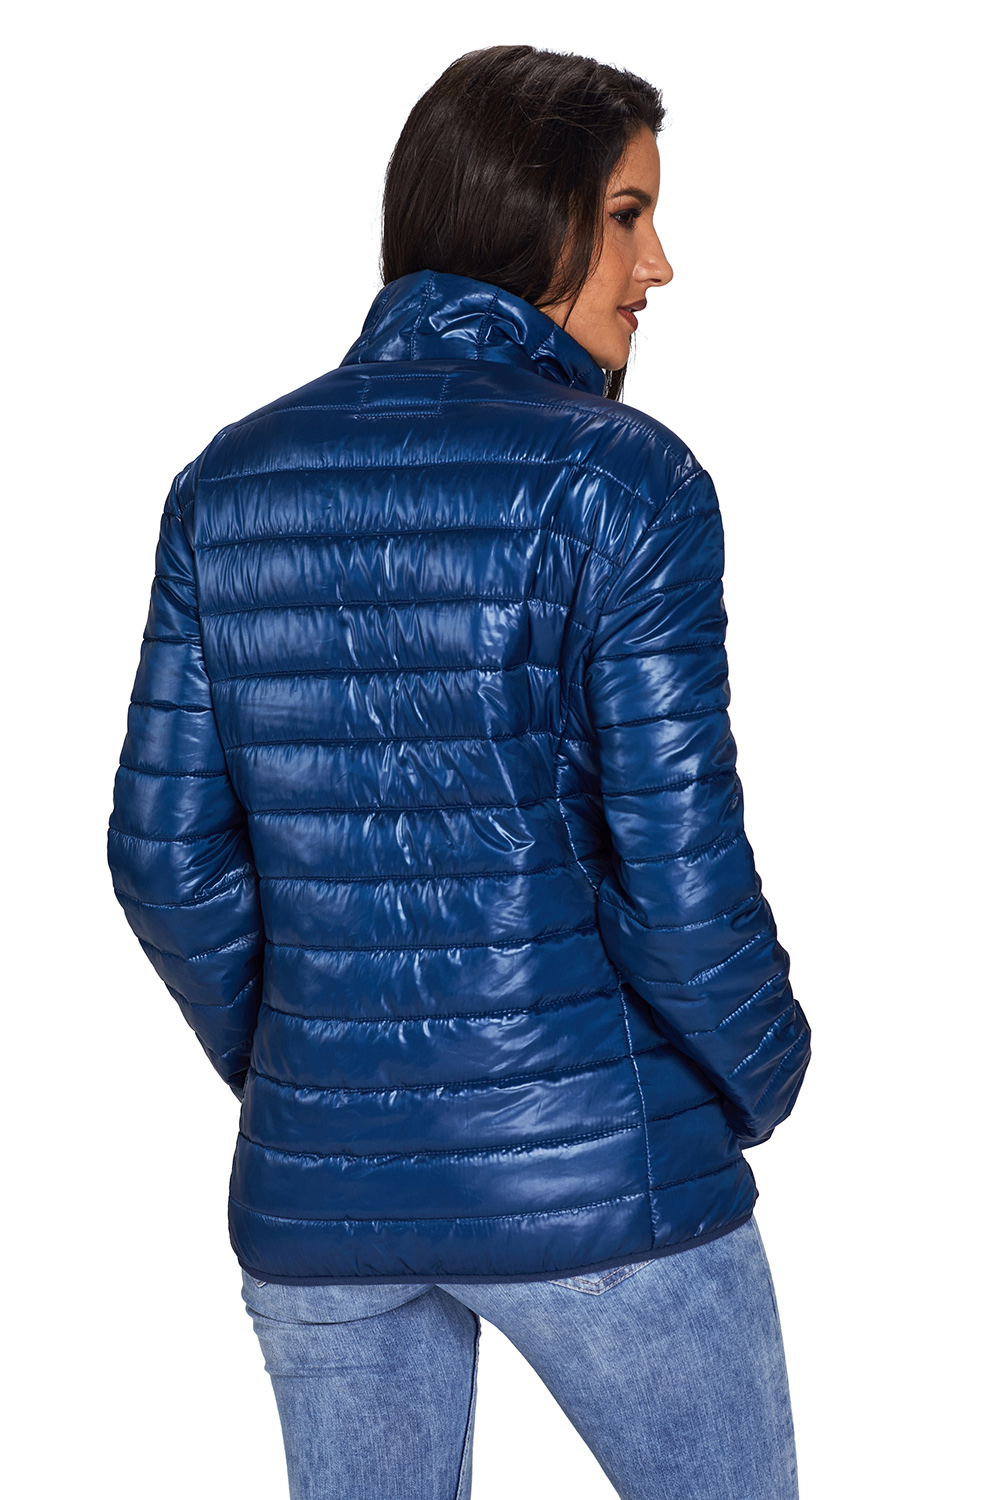 BY85126-5 Blue High Neck Quilted Cotton Jacket